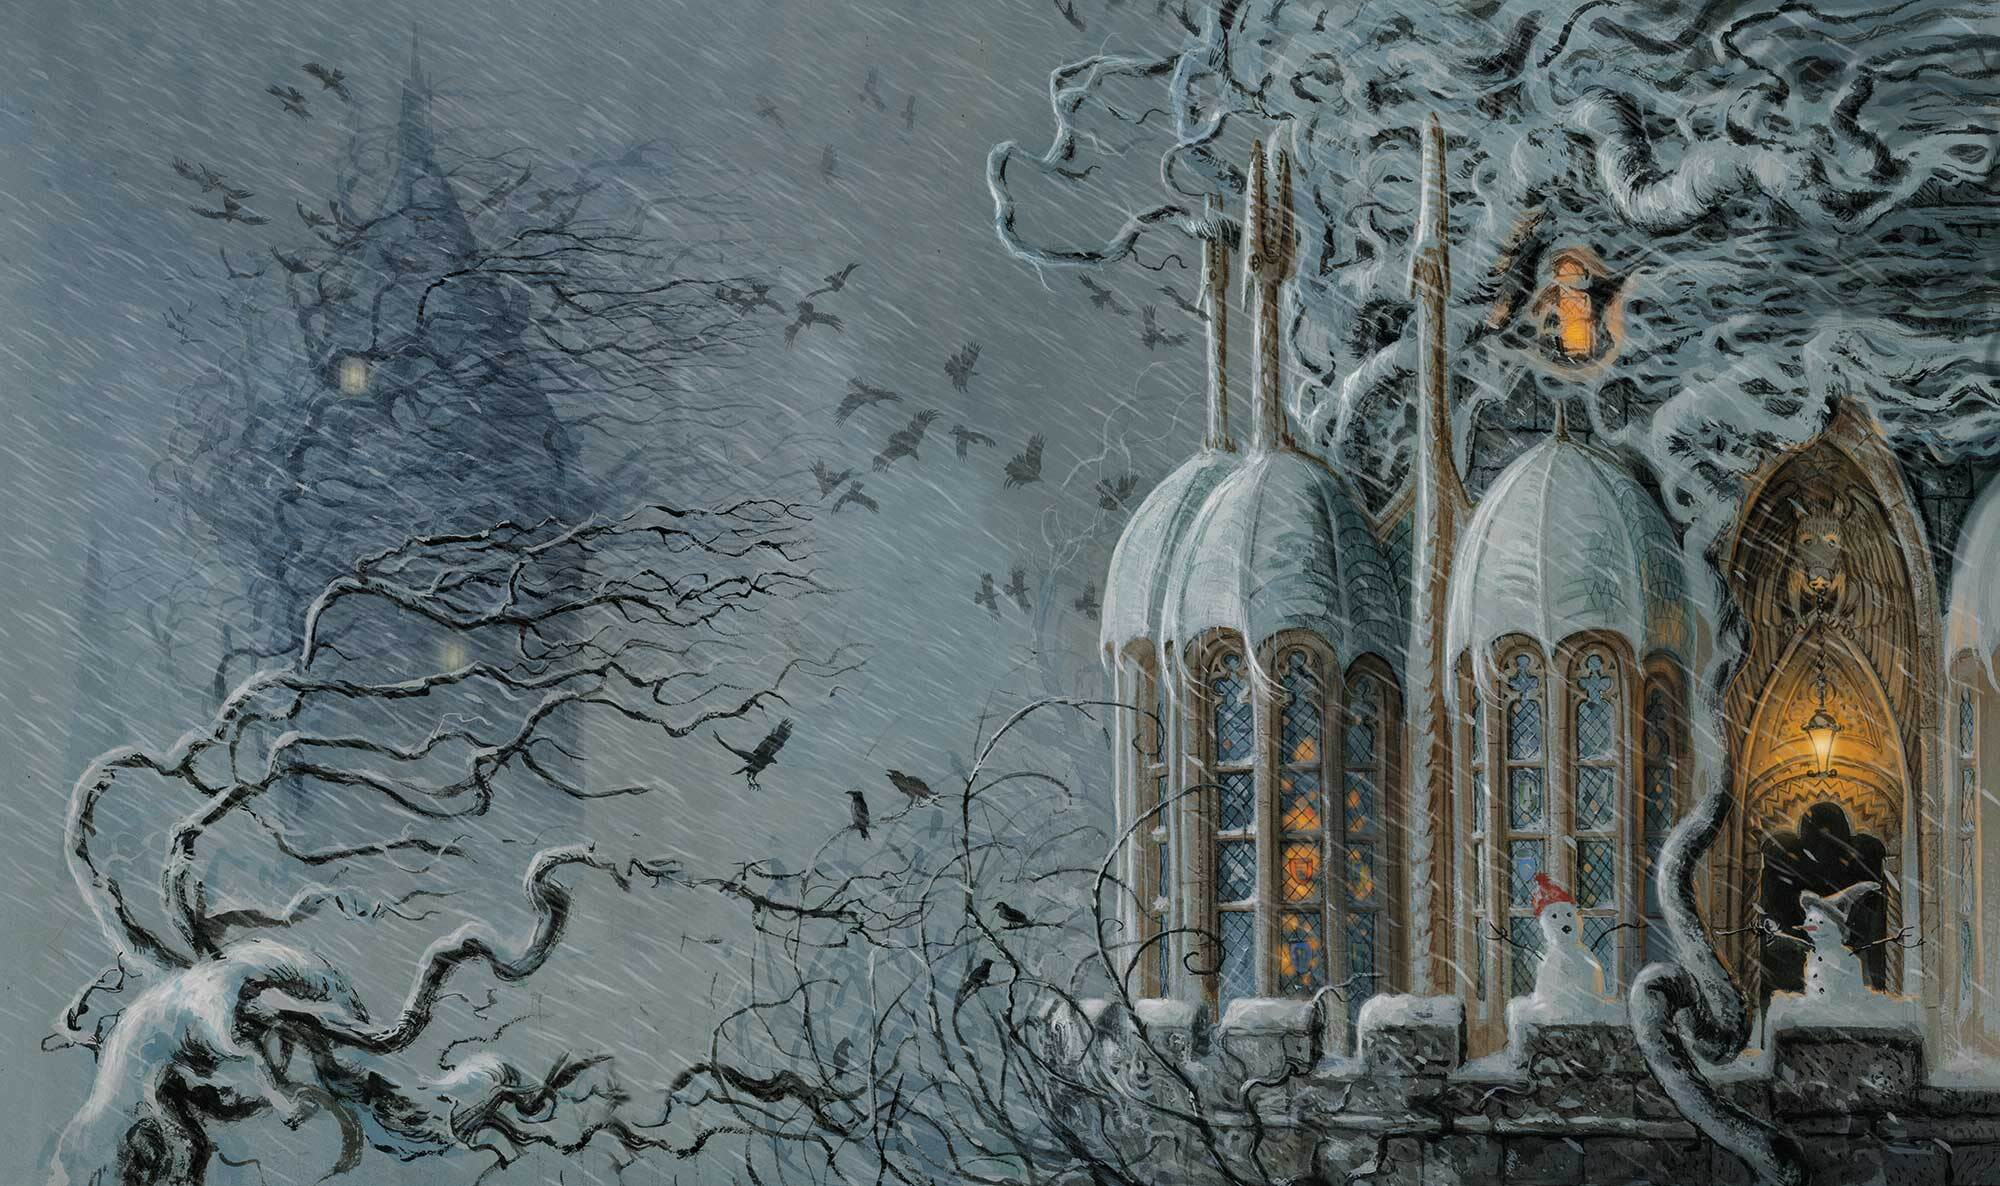 hogwarts-snow-image-illustration-jim-kay